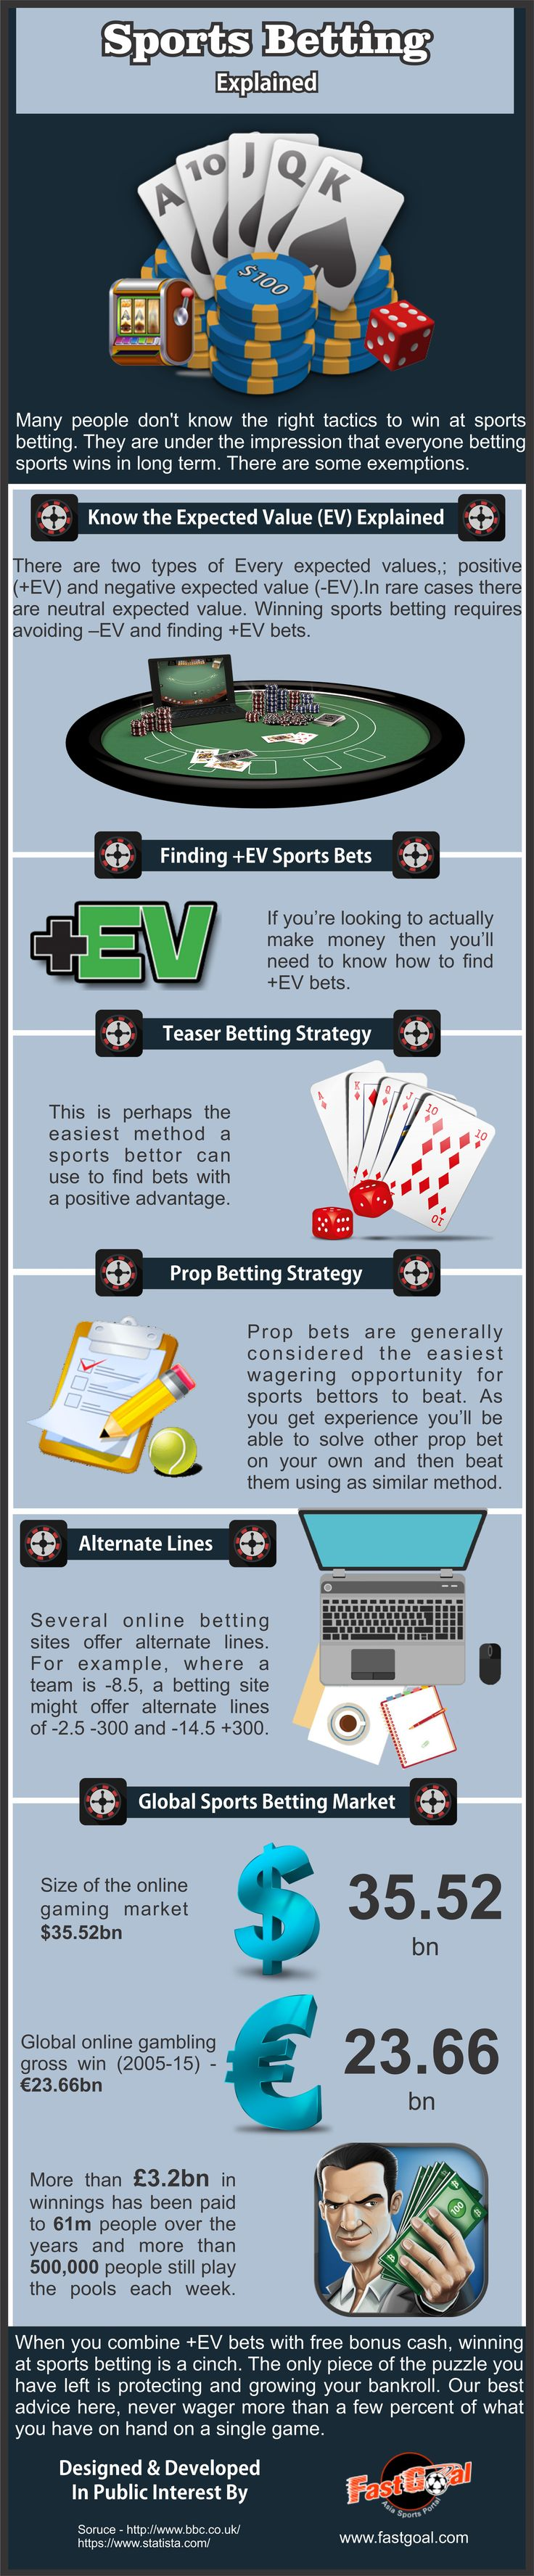 72 best Gambling images on Pinterest | Board games, Role playing ...